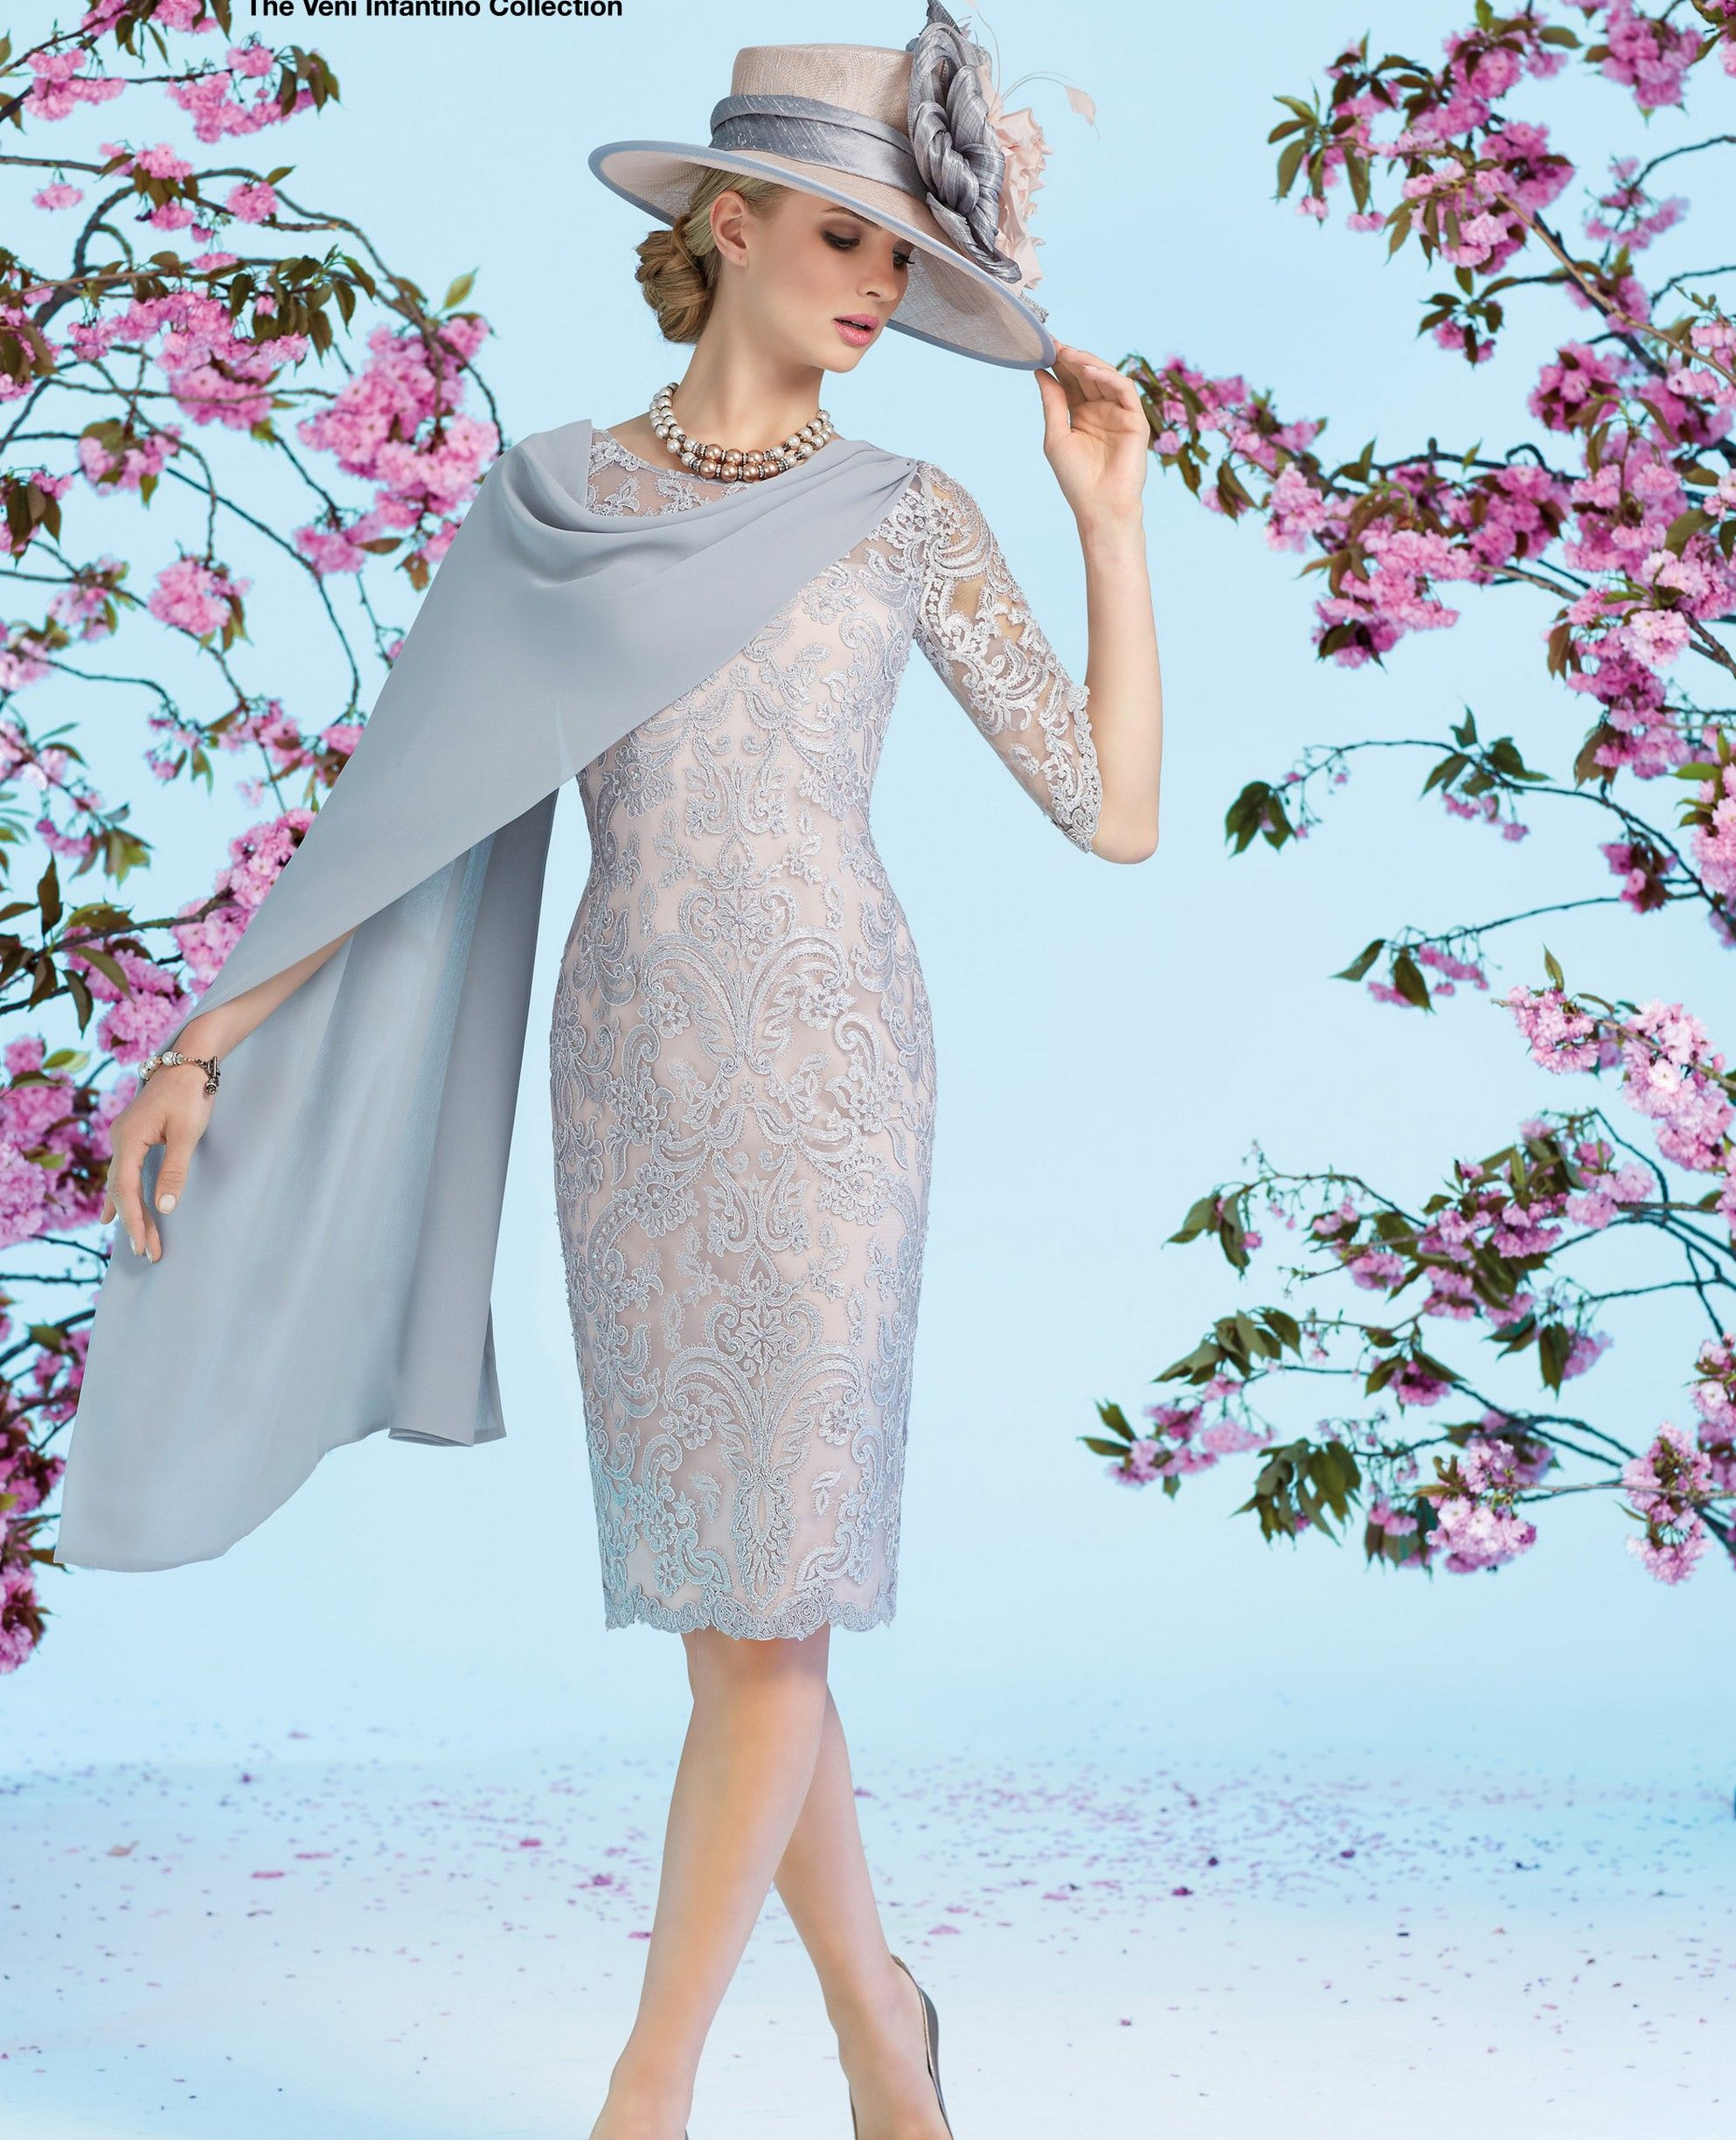 RONALD JOYCE INTERNATIONAL - Wedding dresses and bridal gowns | Chic ...